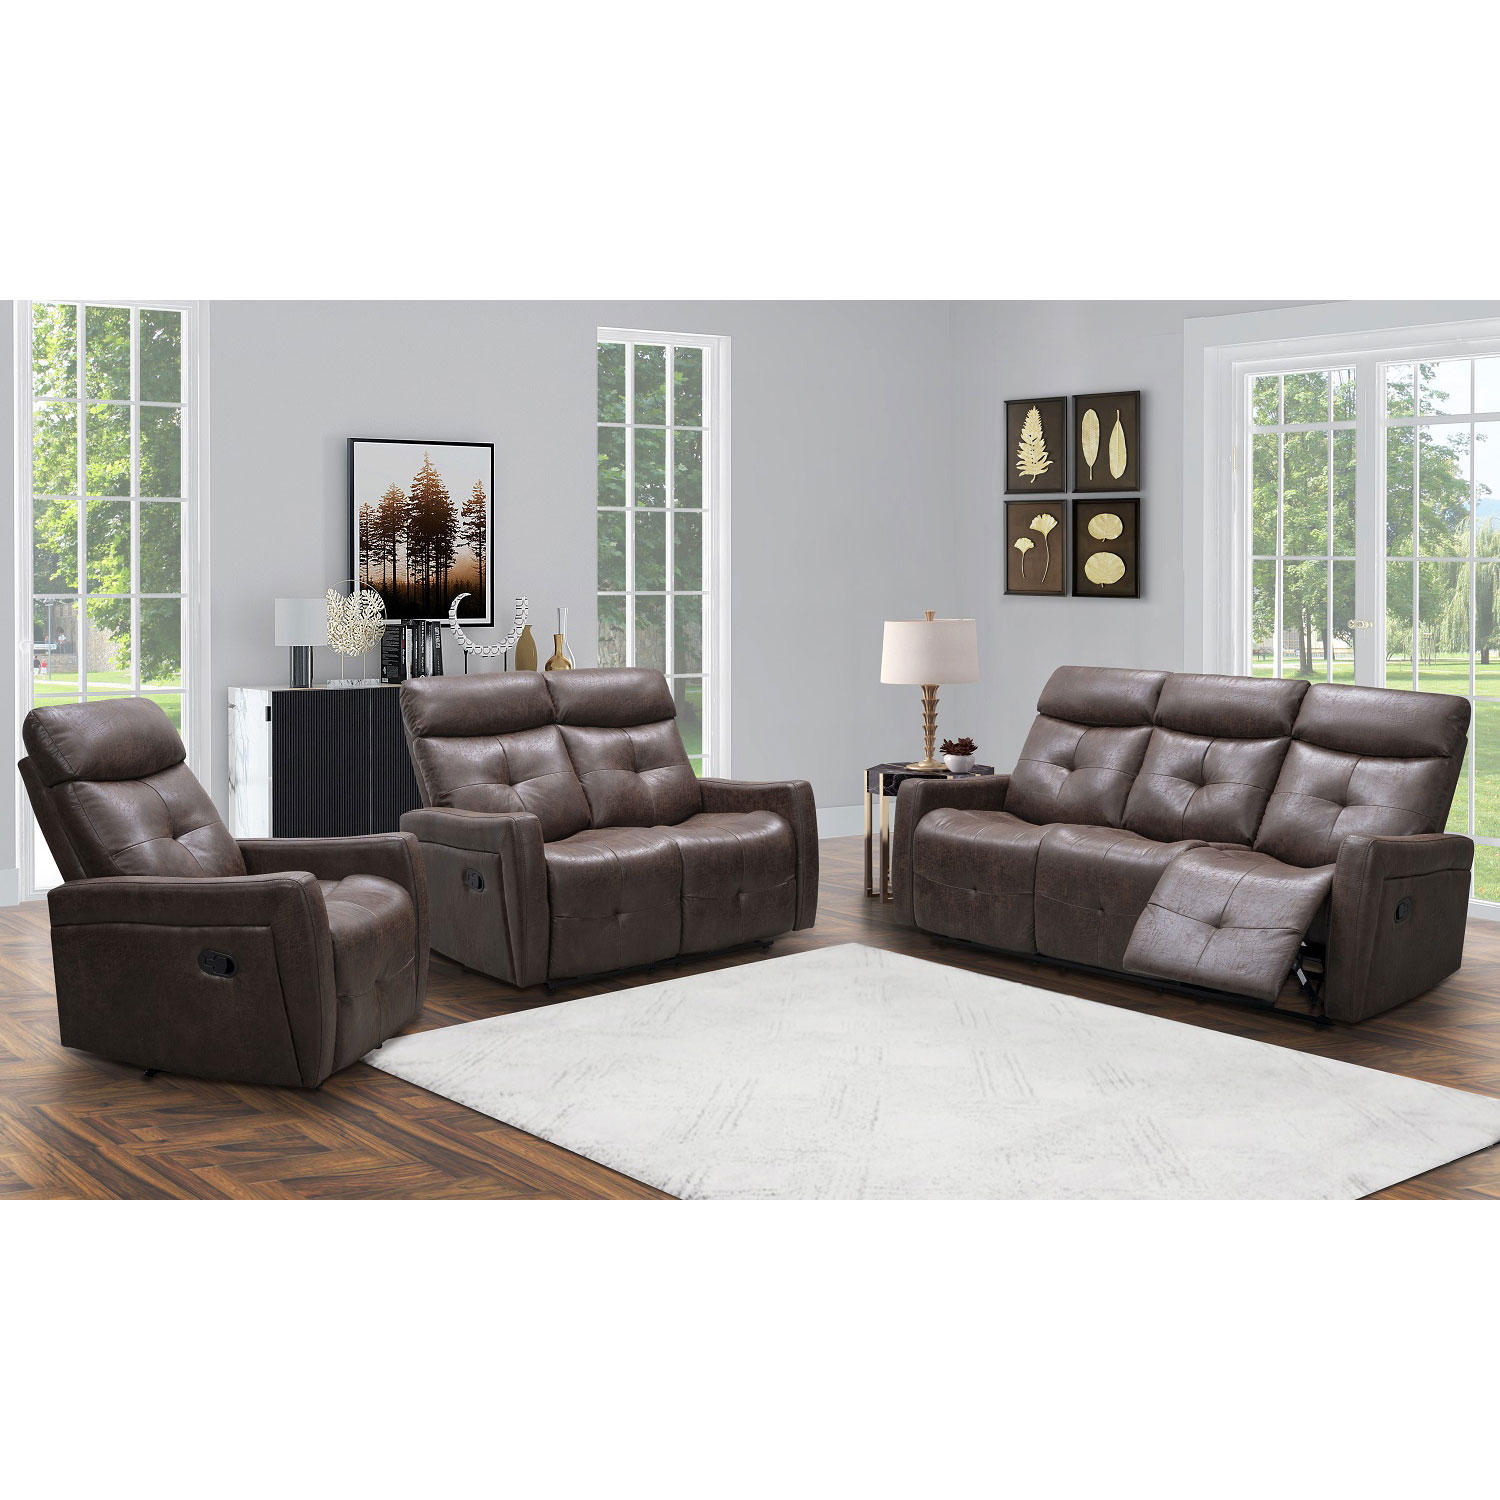 3-Piece Abbyson Living Cambridge Reclining Sofa Loveseat & Chair Set